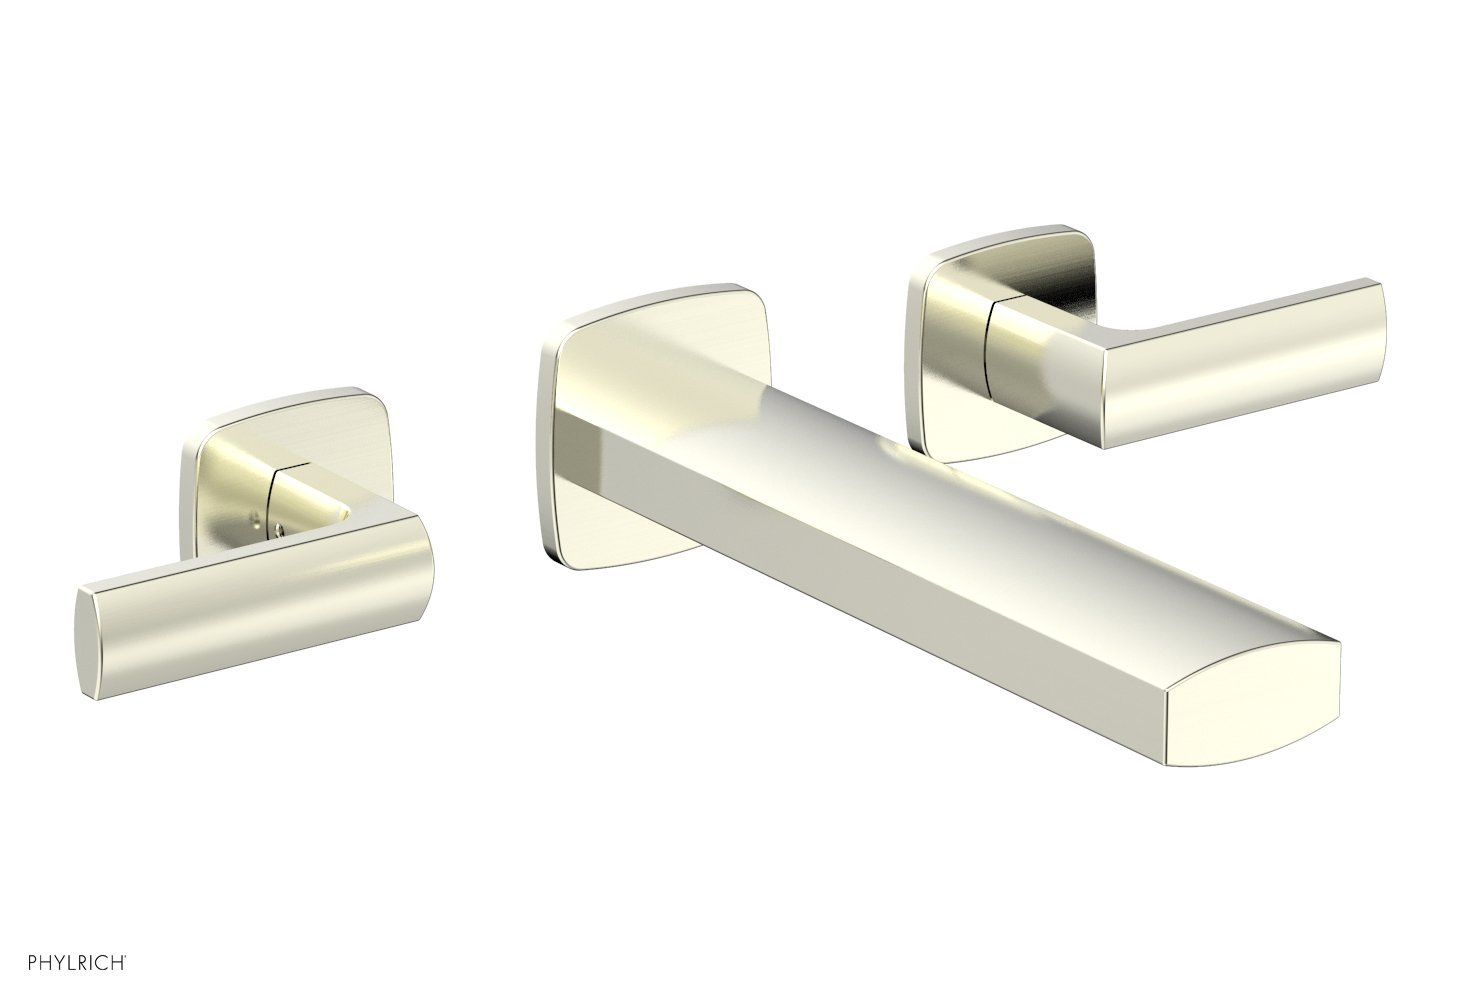 Phylrich 181-12-015 RADI Wall Lavatory Set - Lever Handles - Satin Nickel